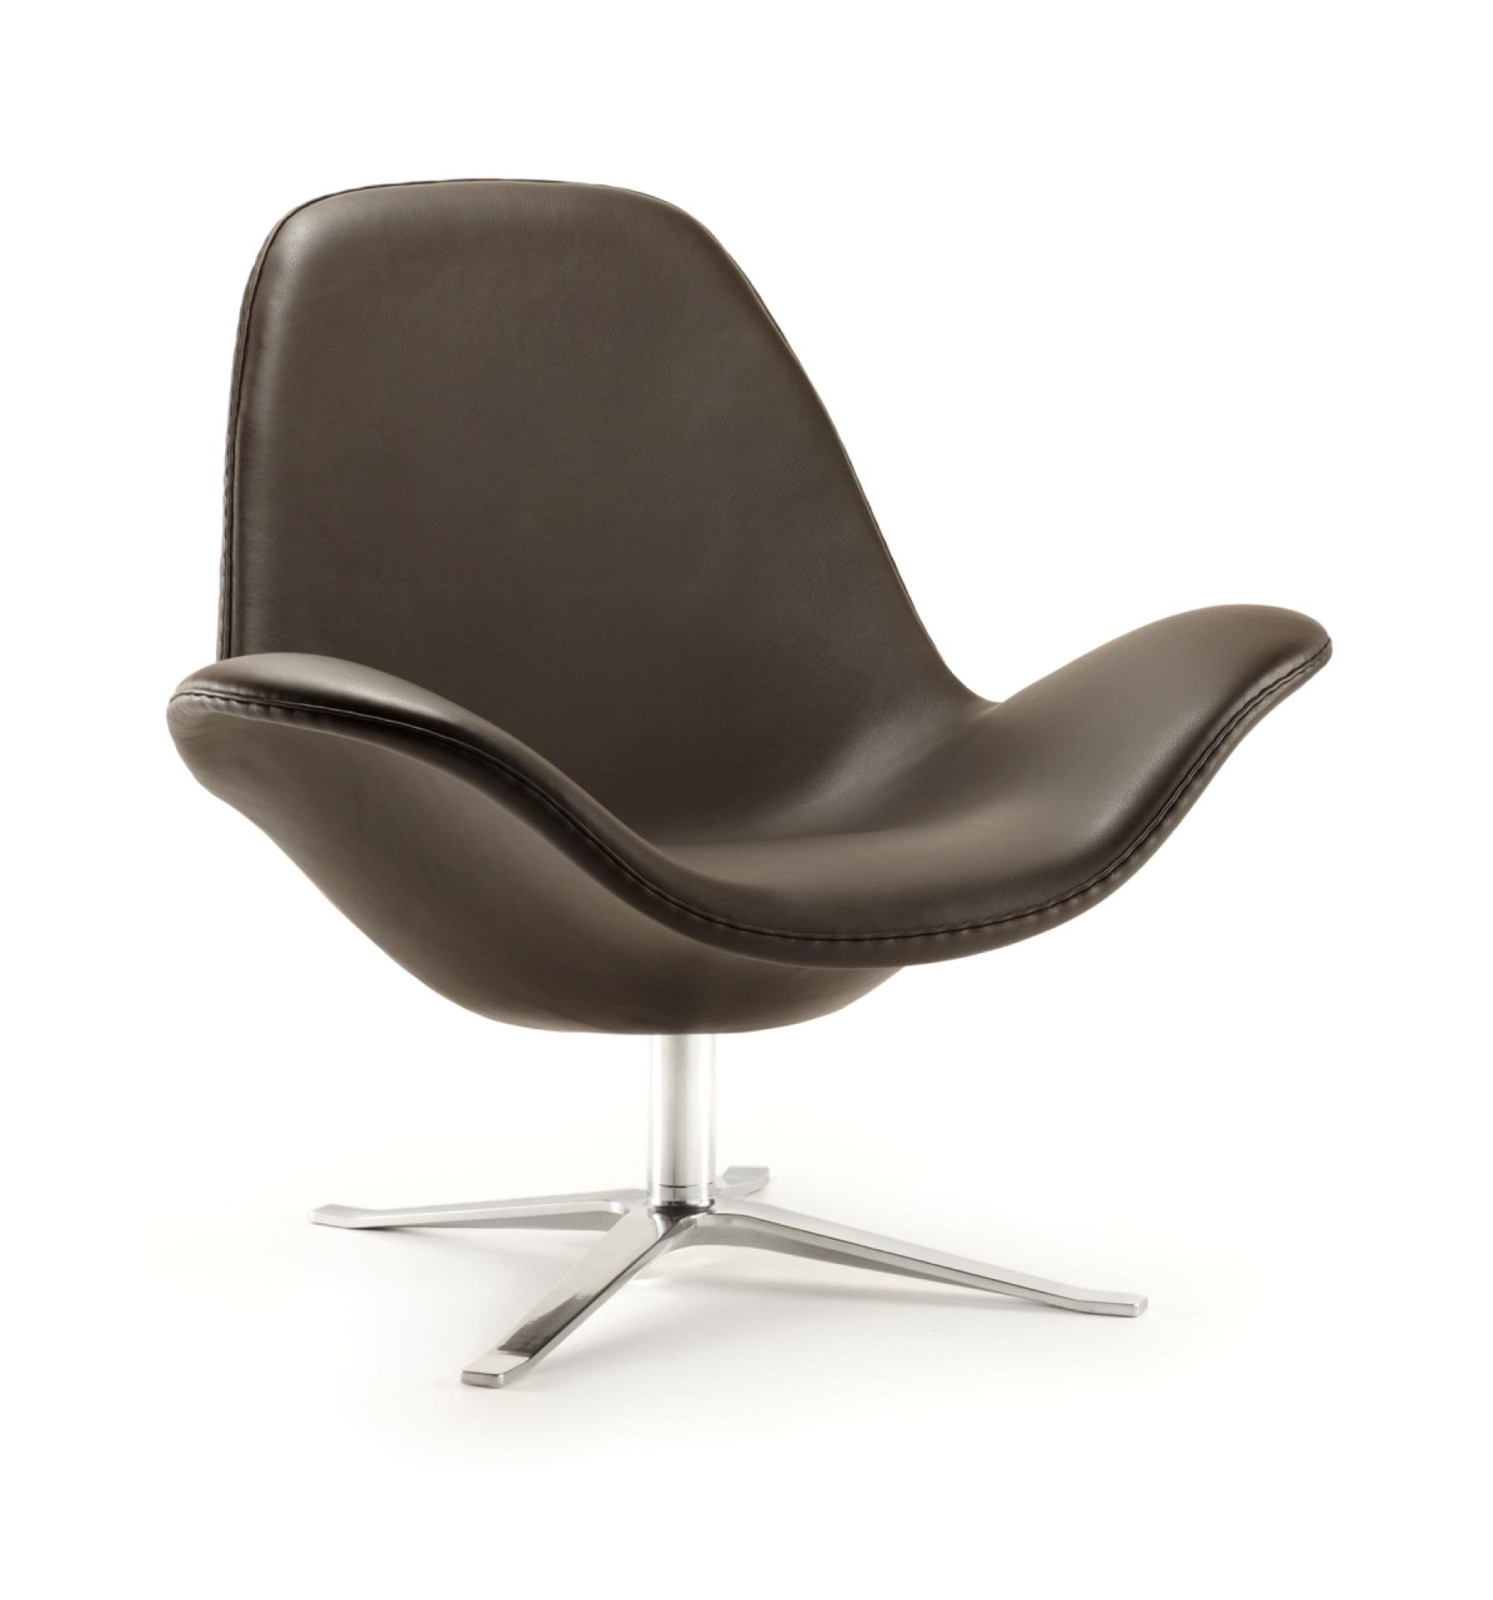 Concord Low Backed Lounge Chair Leather, Chocolate